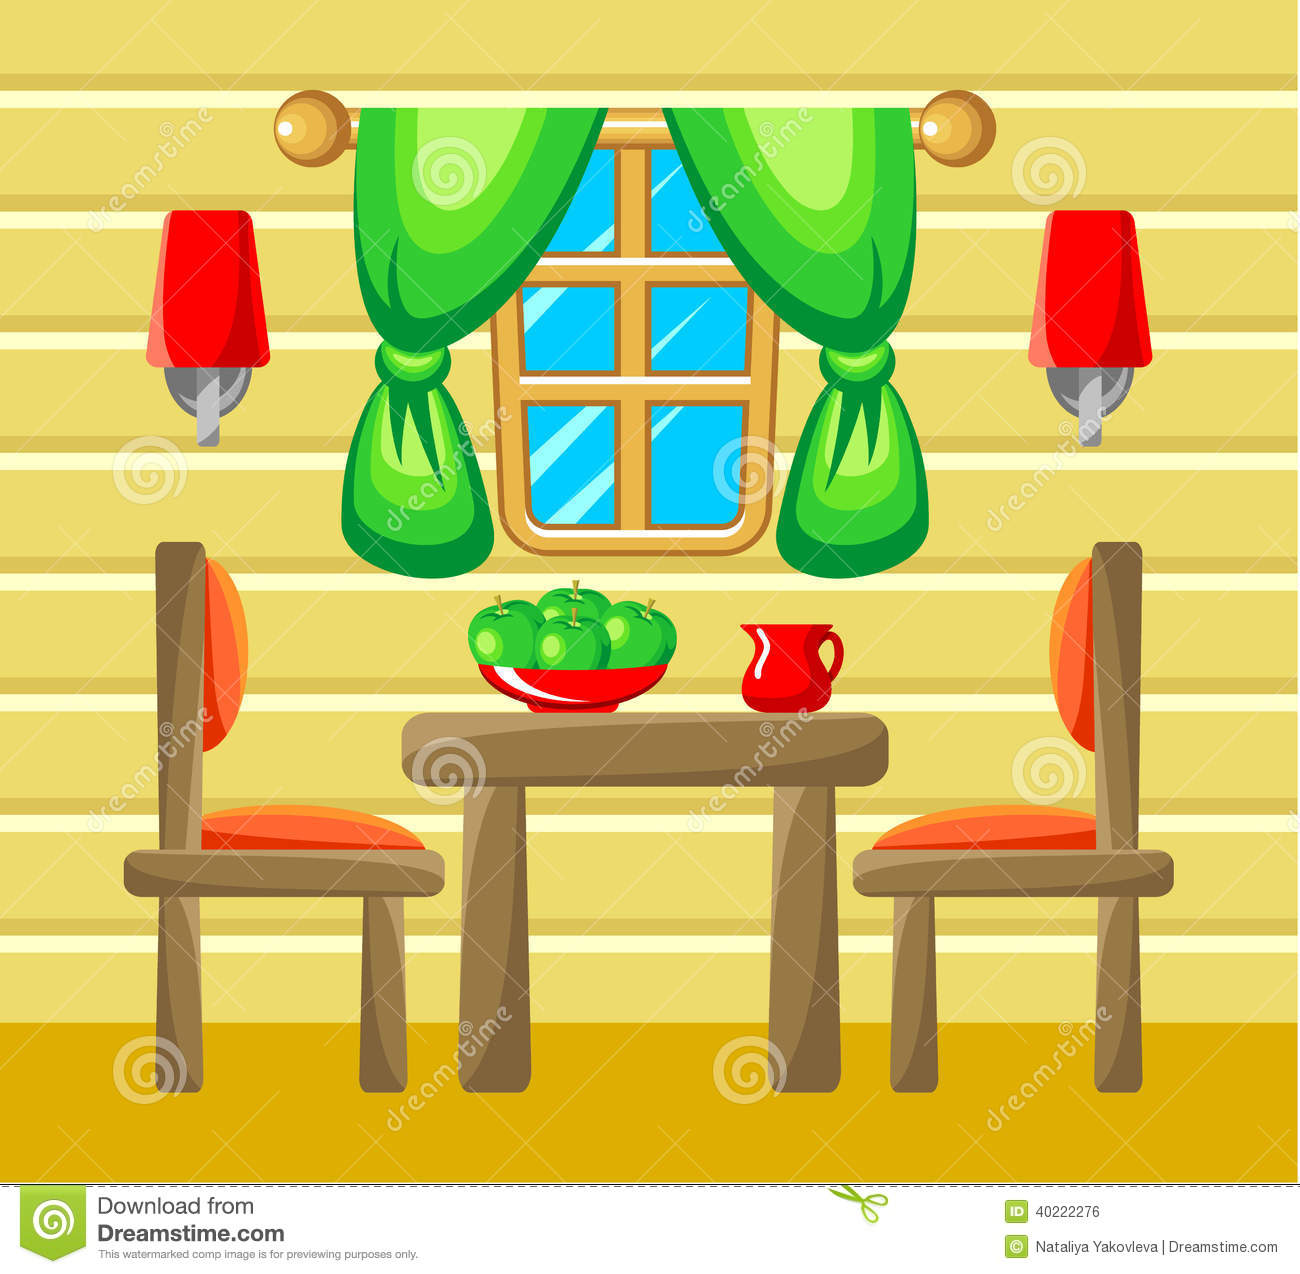 Dining Room Interior Stock Vector Illustration Of Floor 40222276